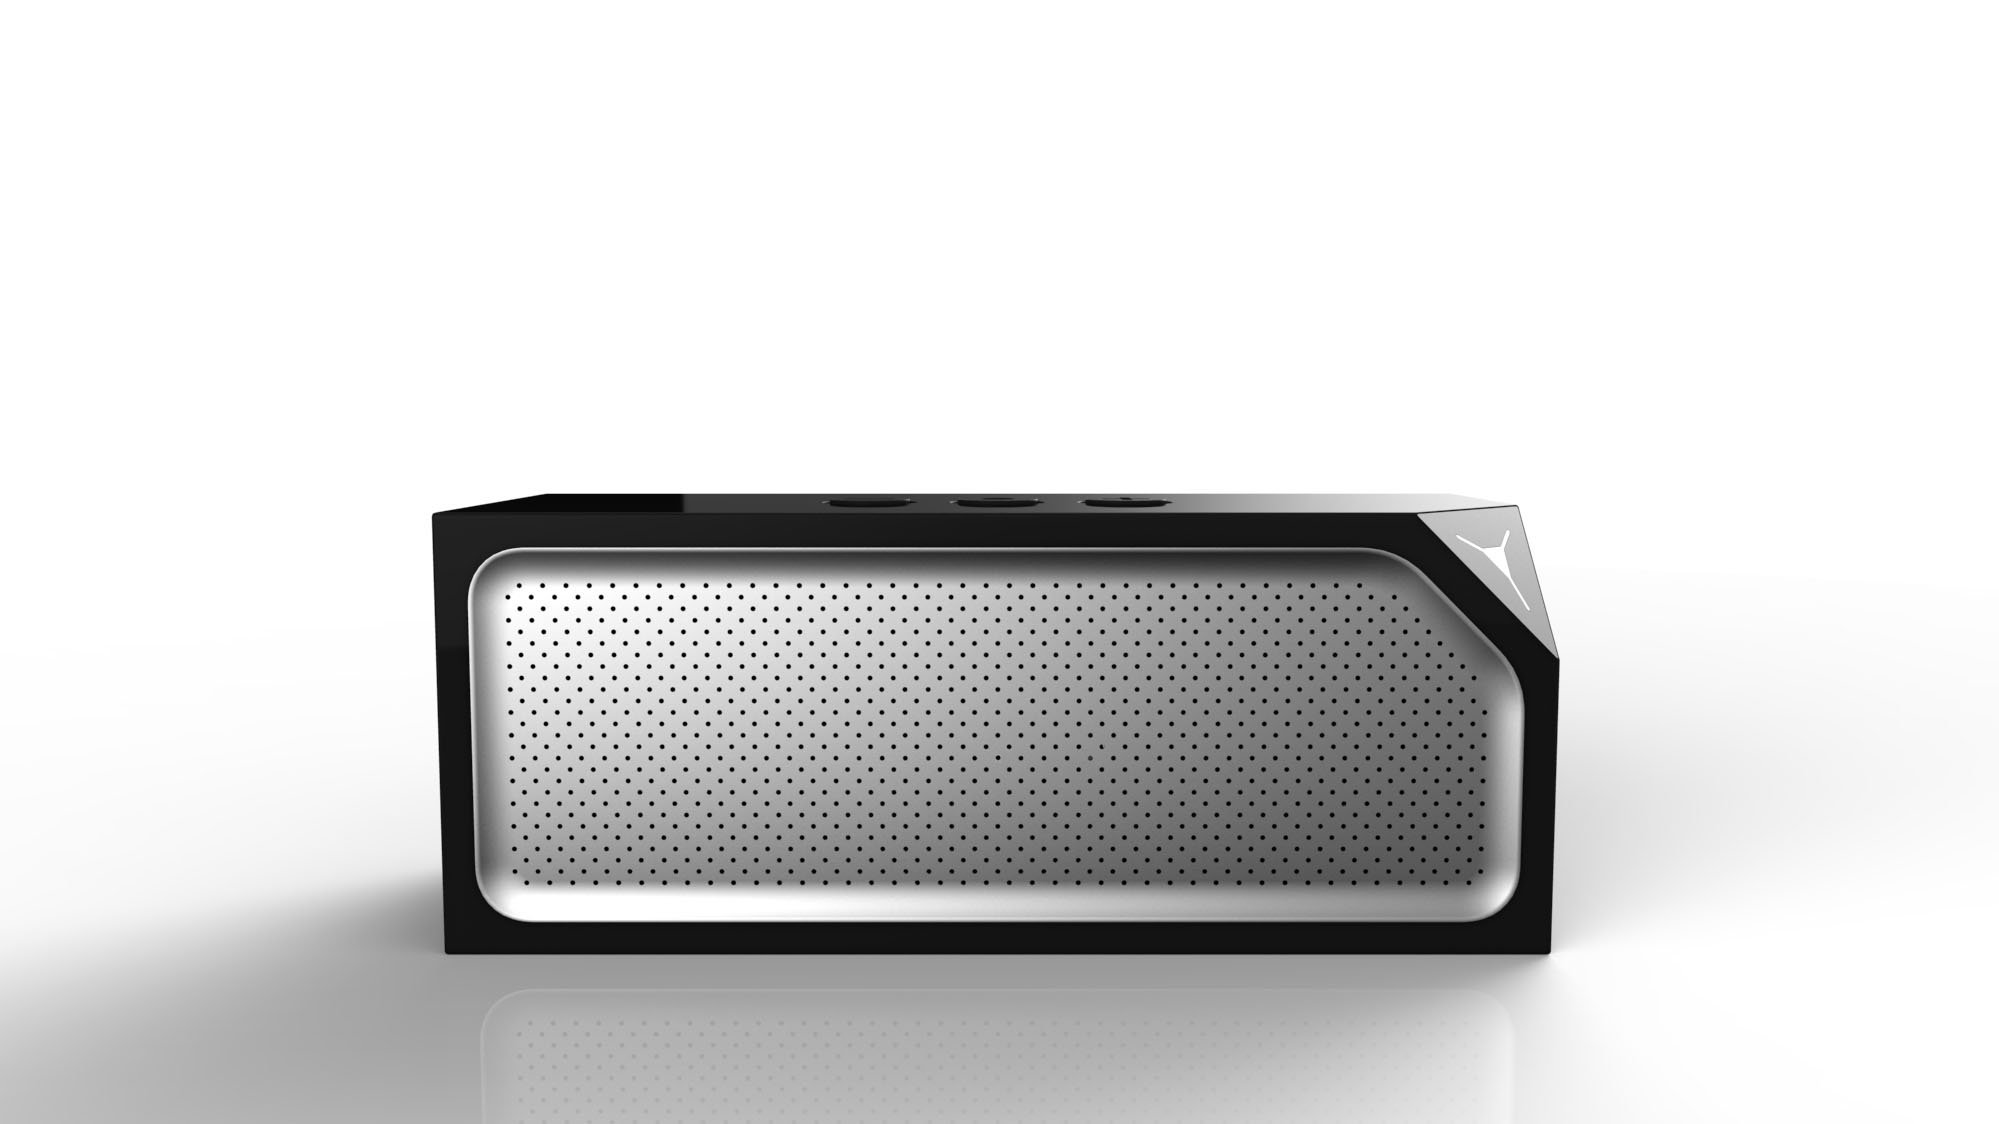 EDGE.sound Wireless Bluetooth Speaker for iPhone5, iPad and Android devices